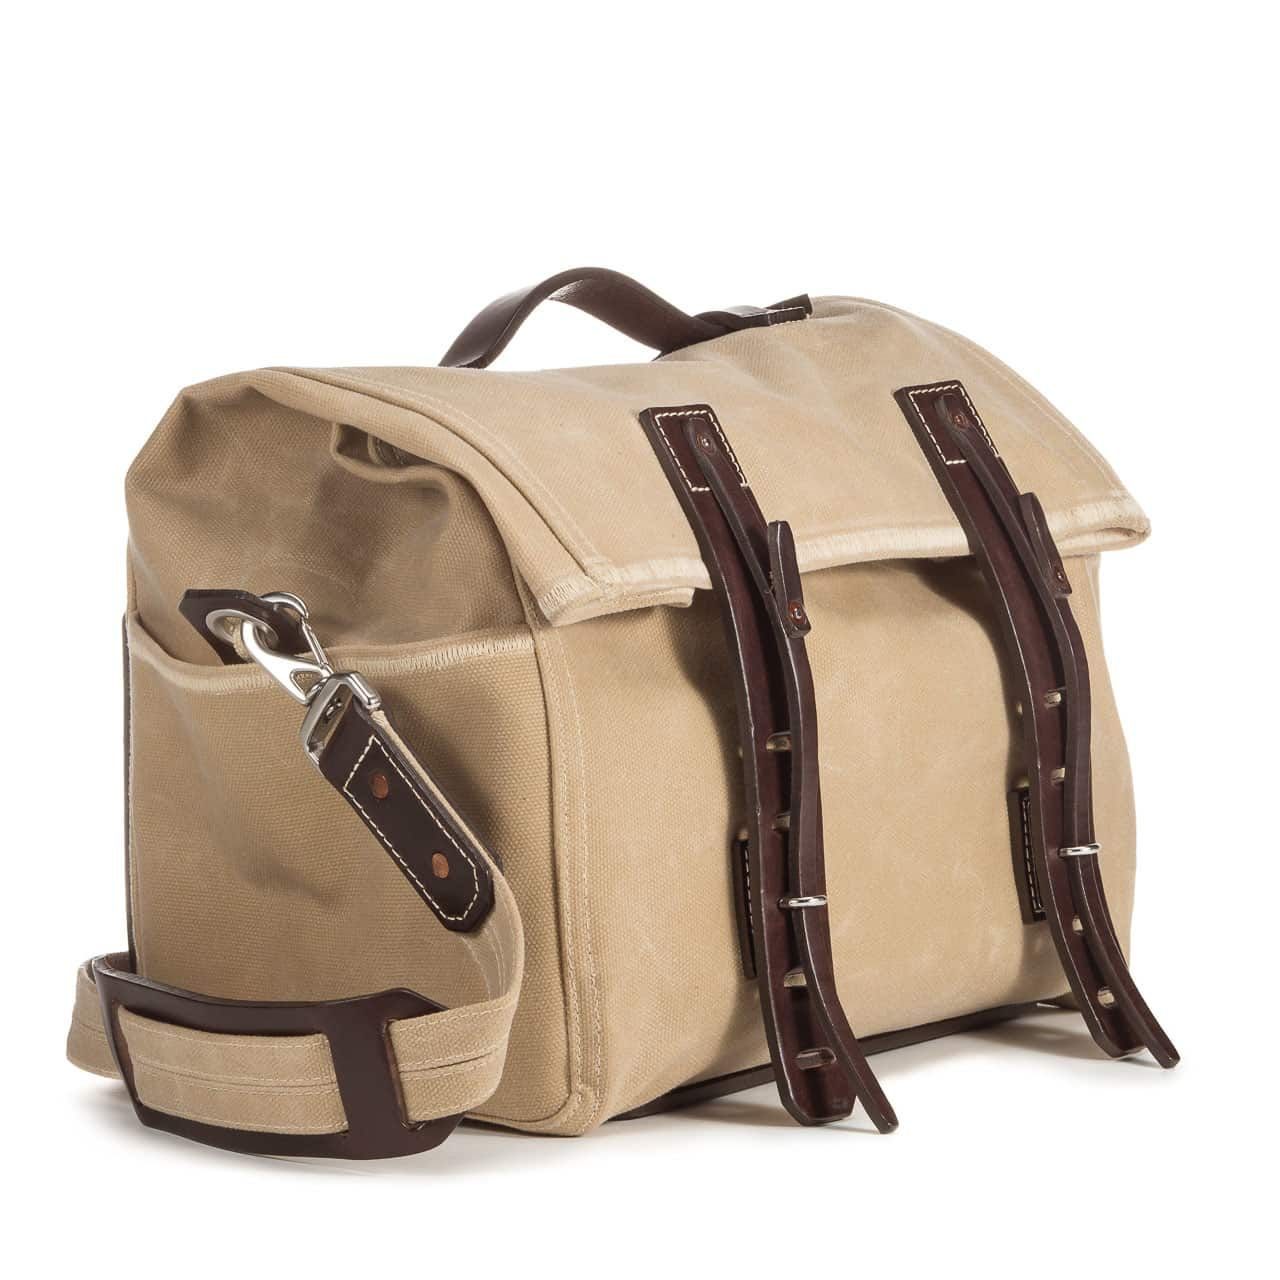 Small Overnight Duffel in Color Sand Front Angle